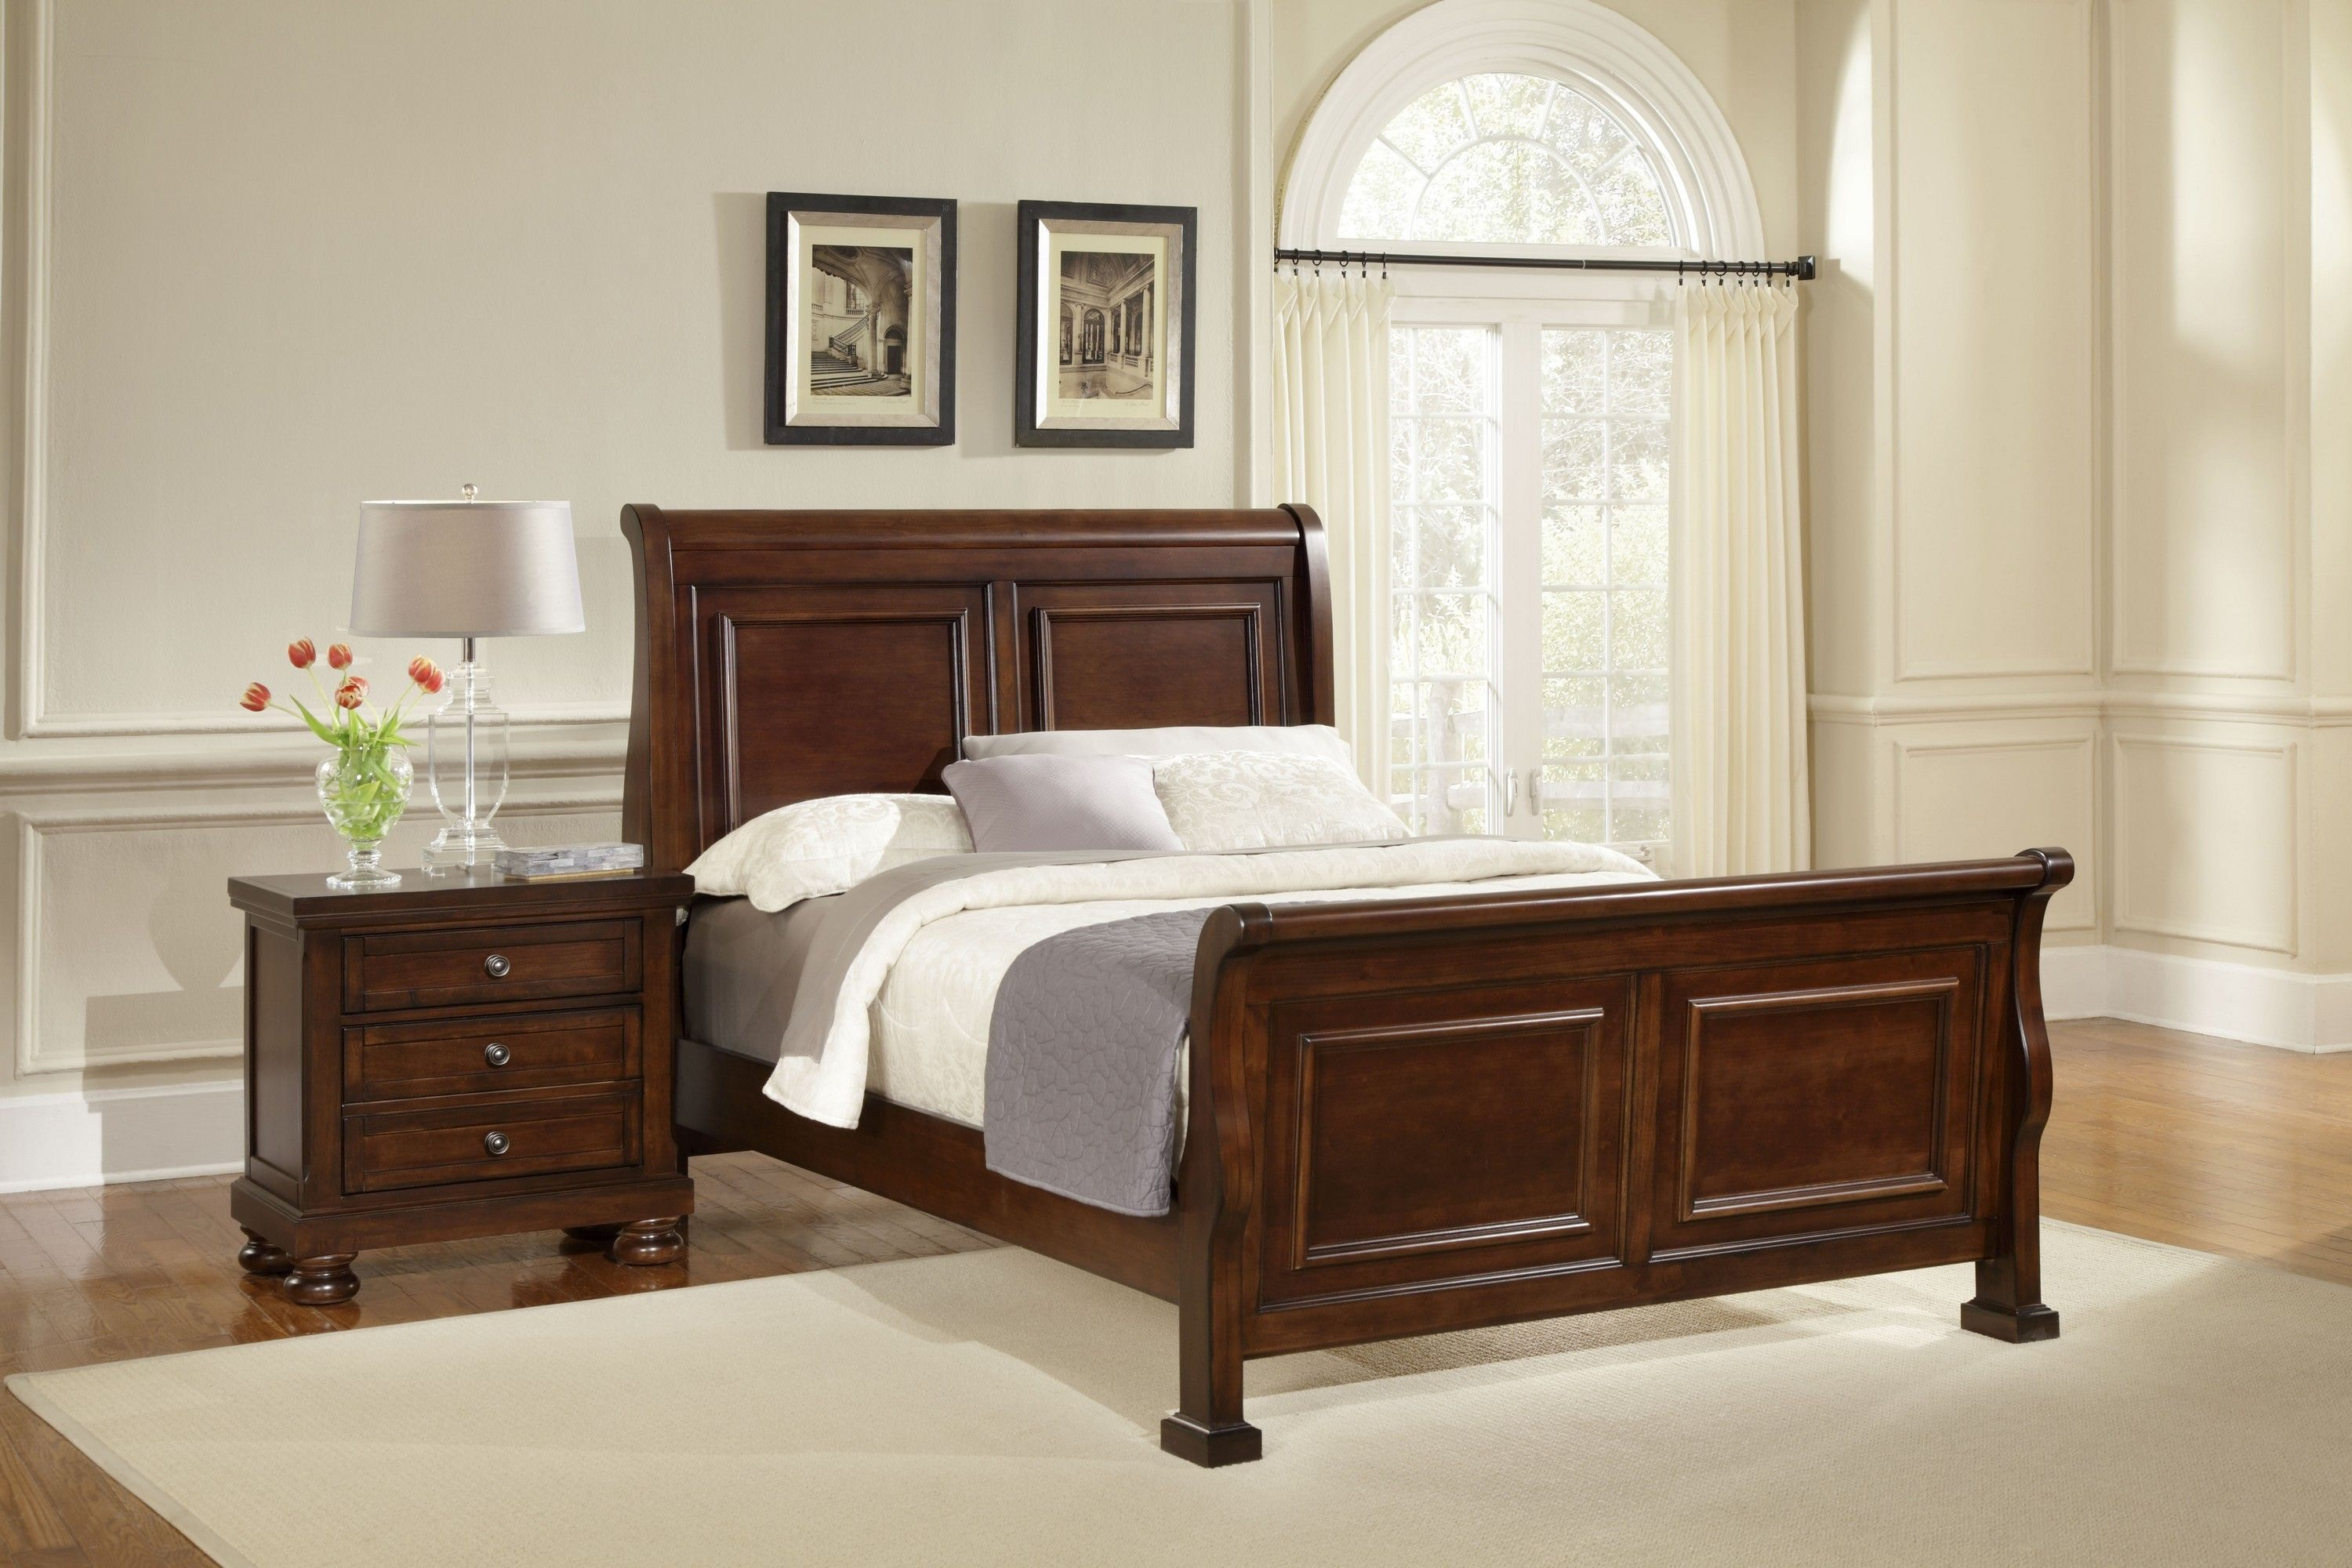 Bassett Furniture Reviews Bassett Home Furnishings San